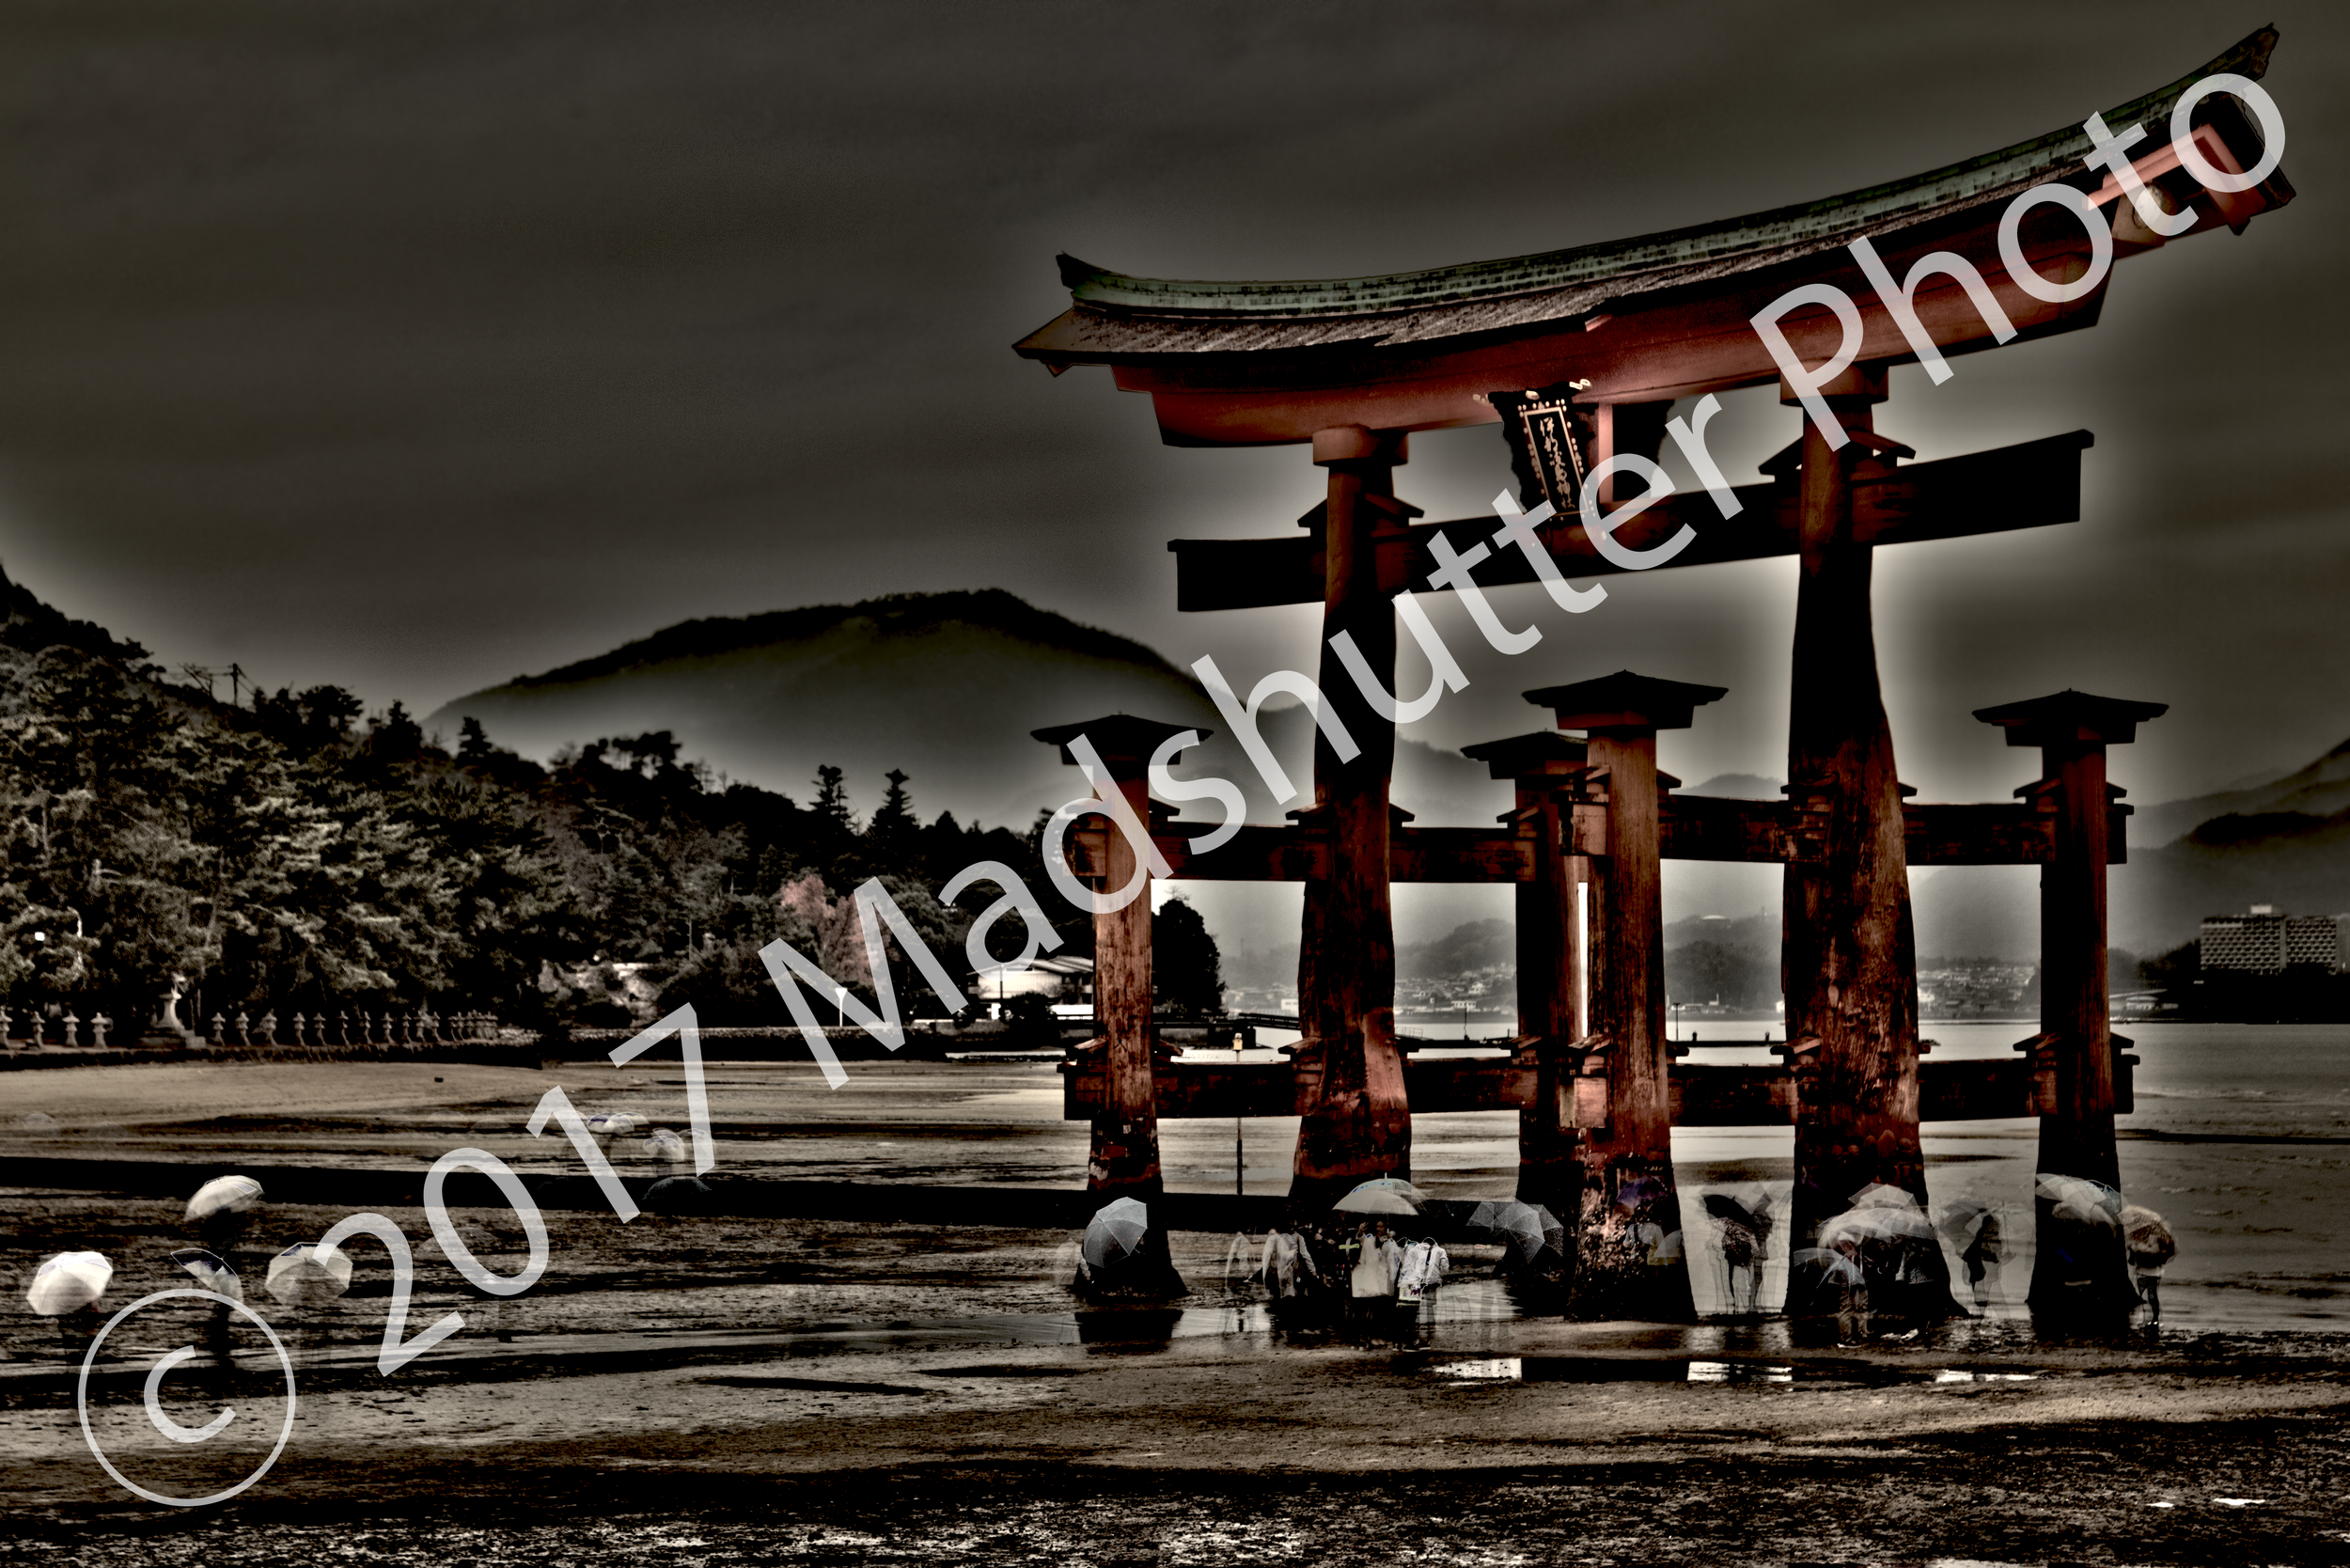 awakening phase 1, realization.   the world is different. but i am the same. i am the same as i was yesterday and yesteryear. it is time for change.   floating by the gate . December, 2015 |itsukushima | japan